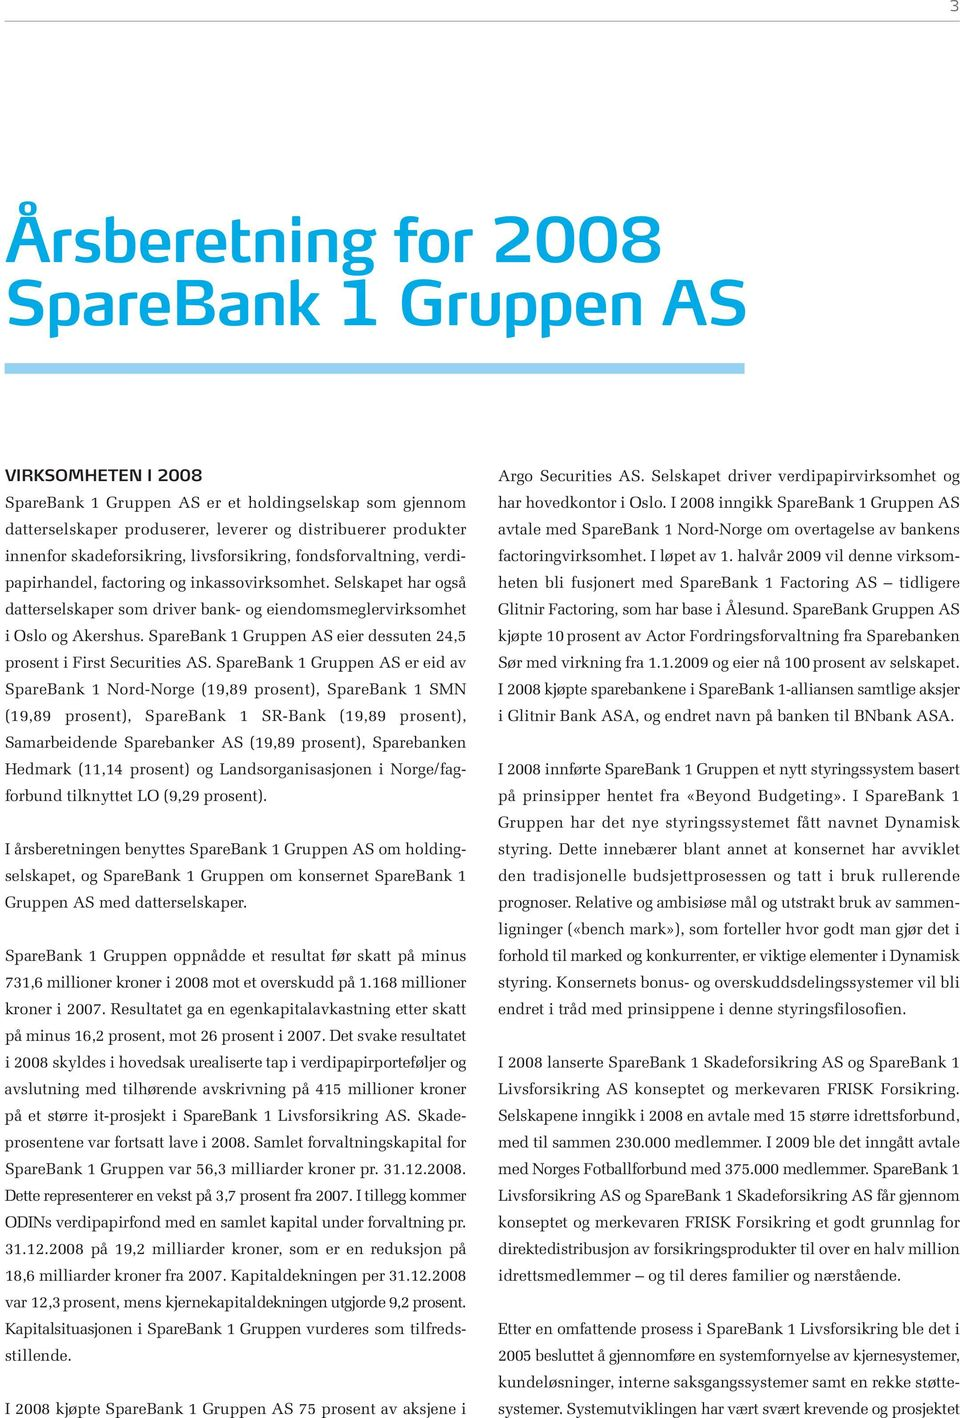 SpareBank 1 Gruppen AS eier dessuten 24,5 prosent i First Securities AS.